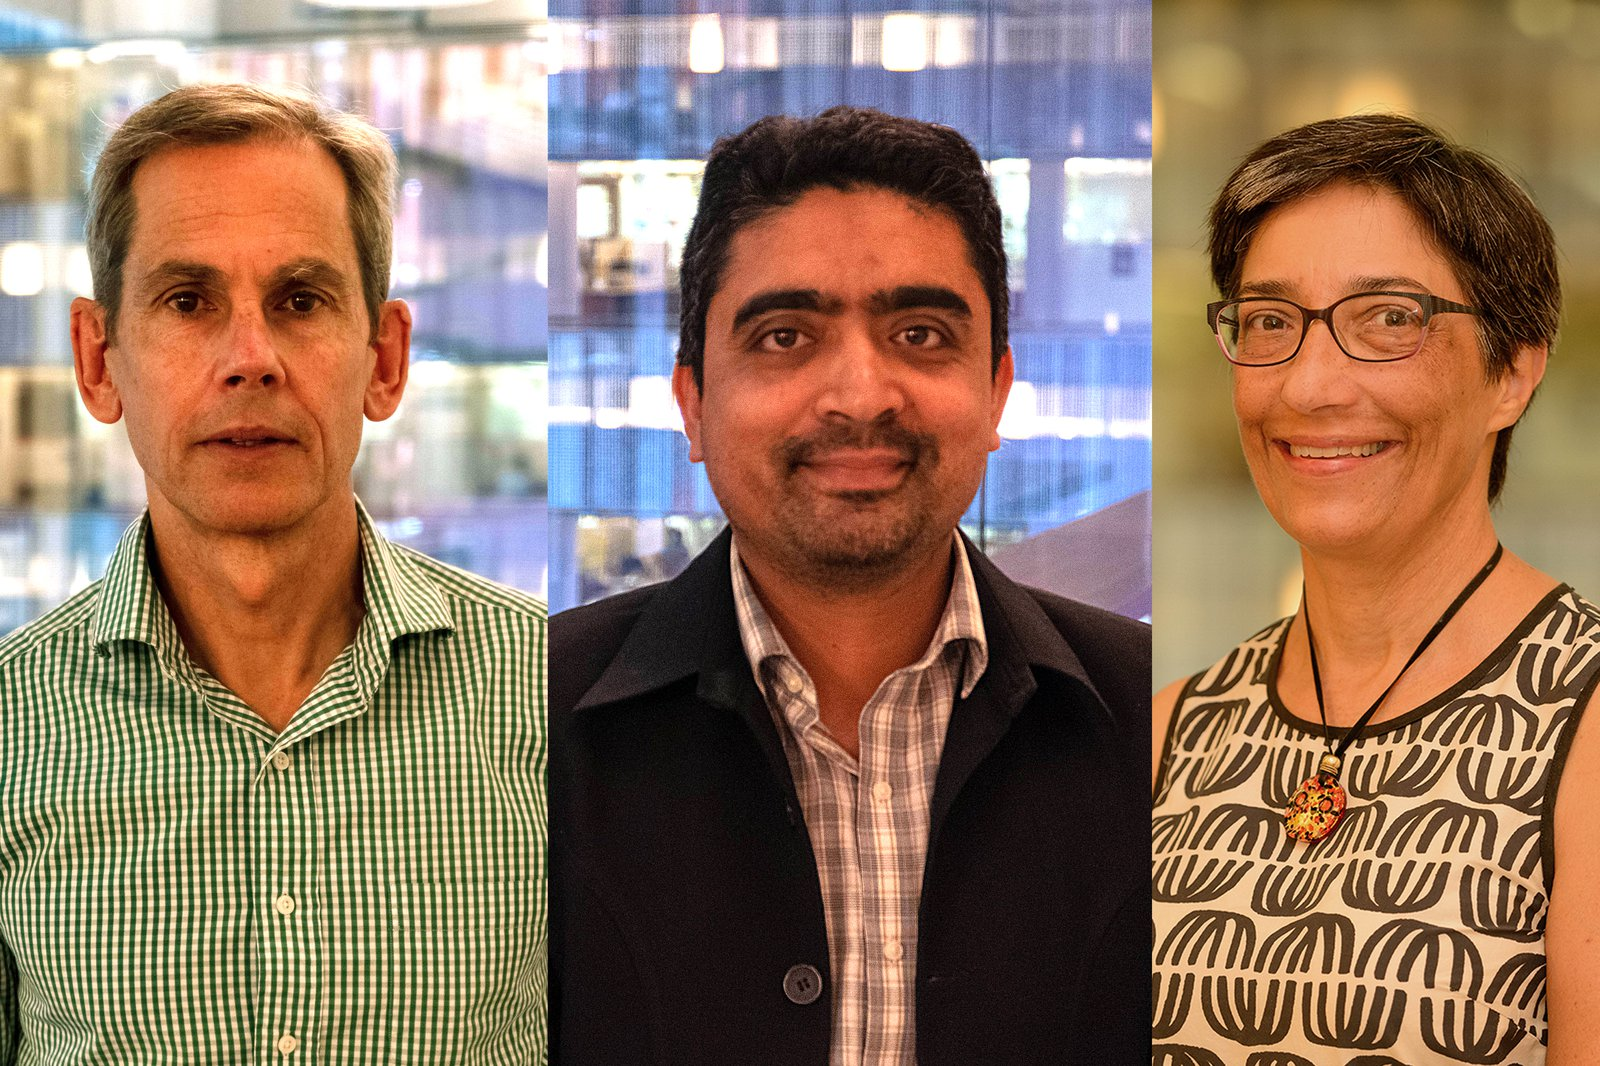 T1D Research Team